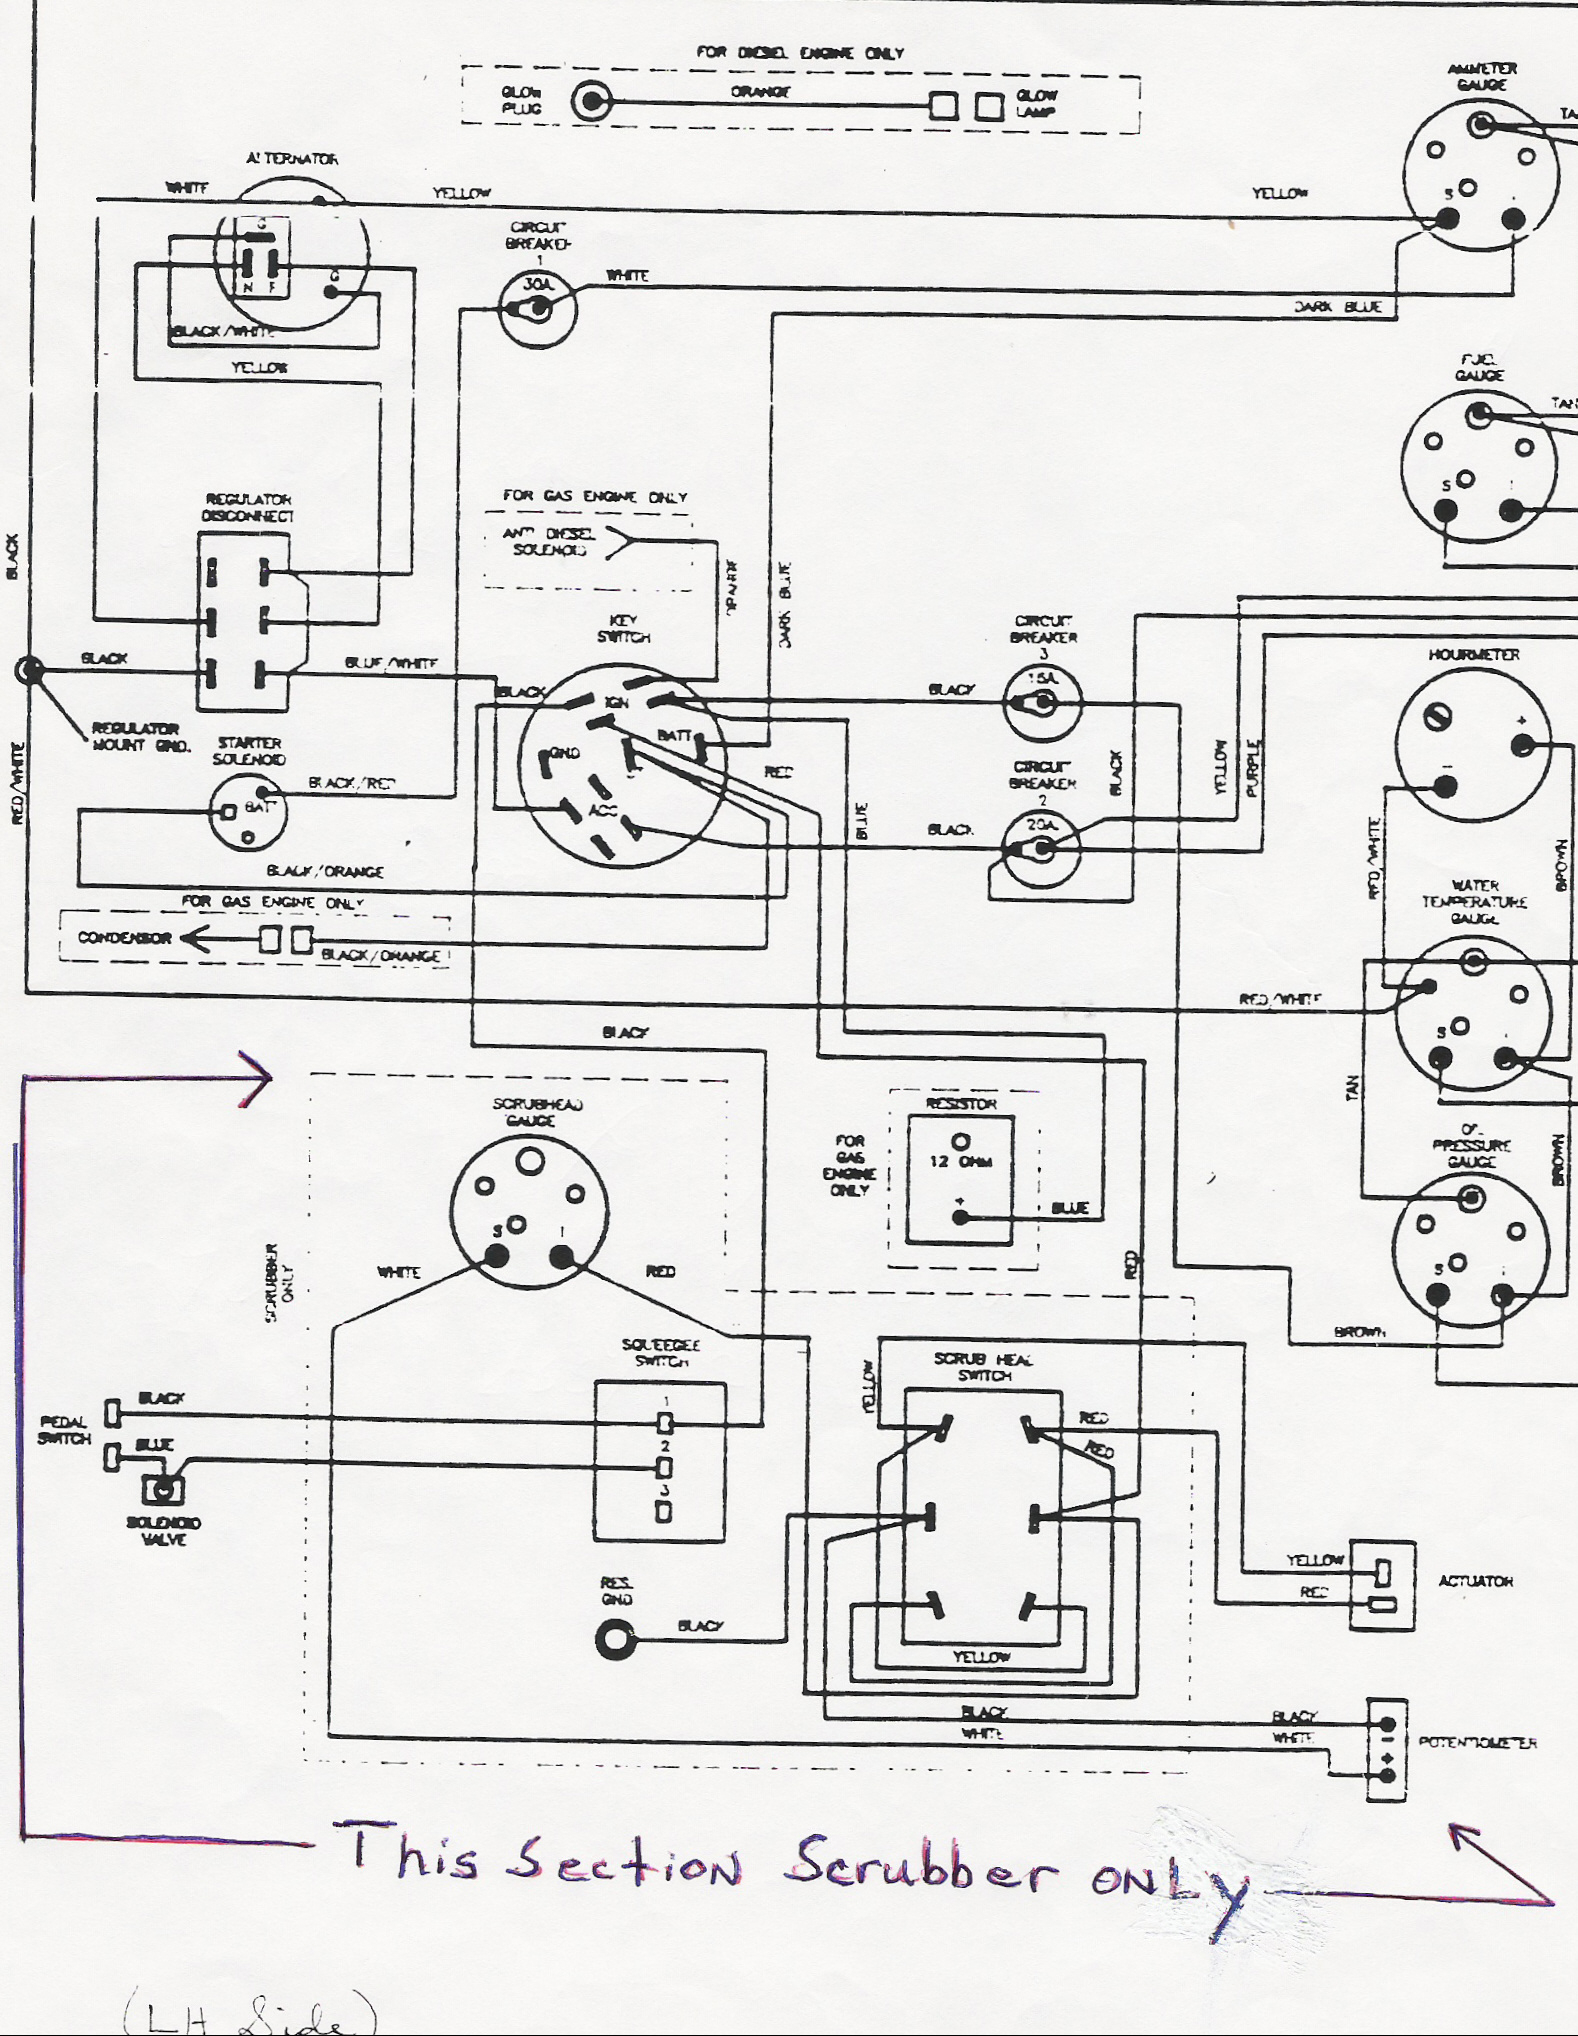 Rv Generator Wiring Diagrams | Wiring Diagram - Onan Generator Wiring Diagram